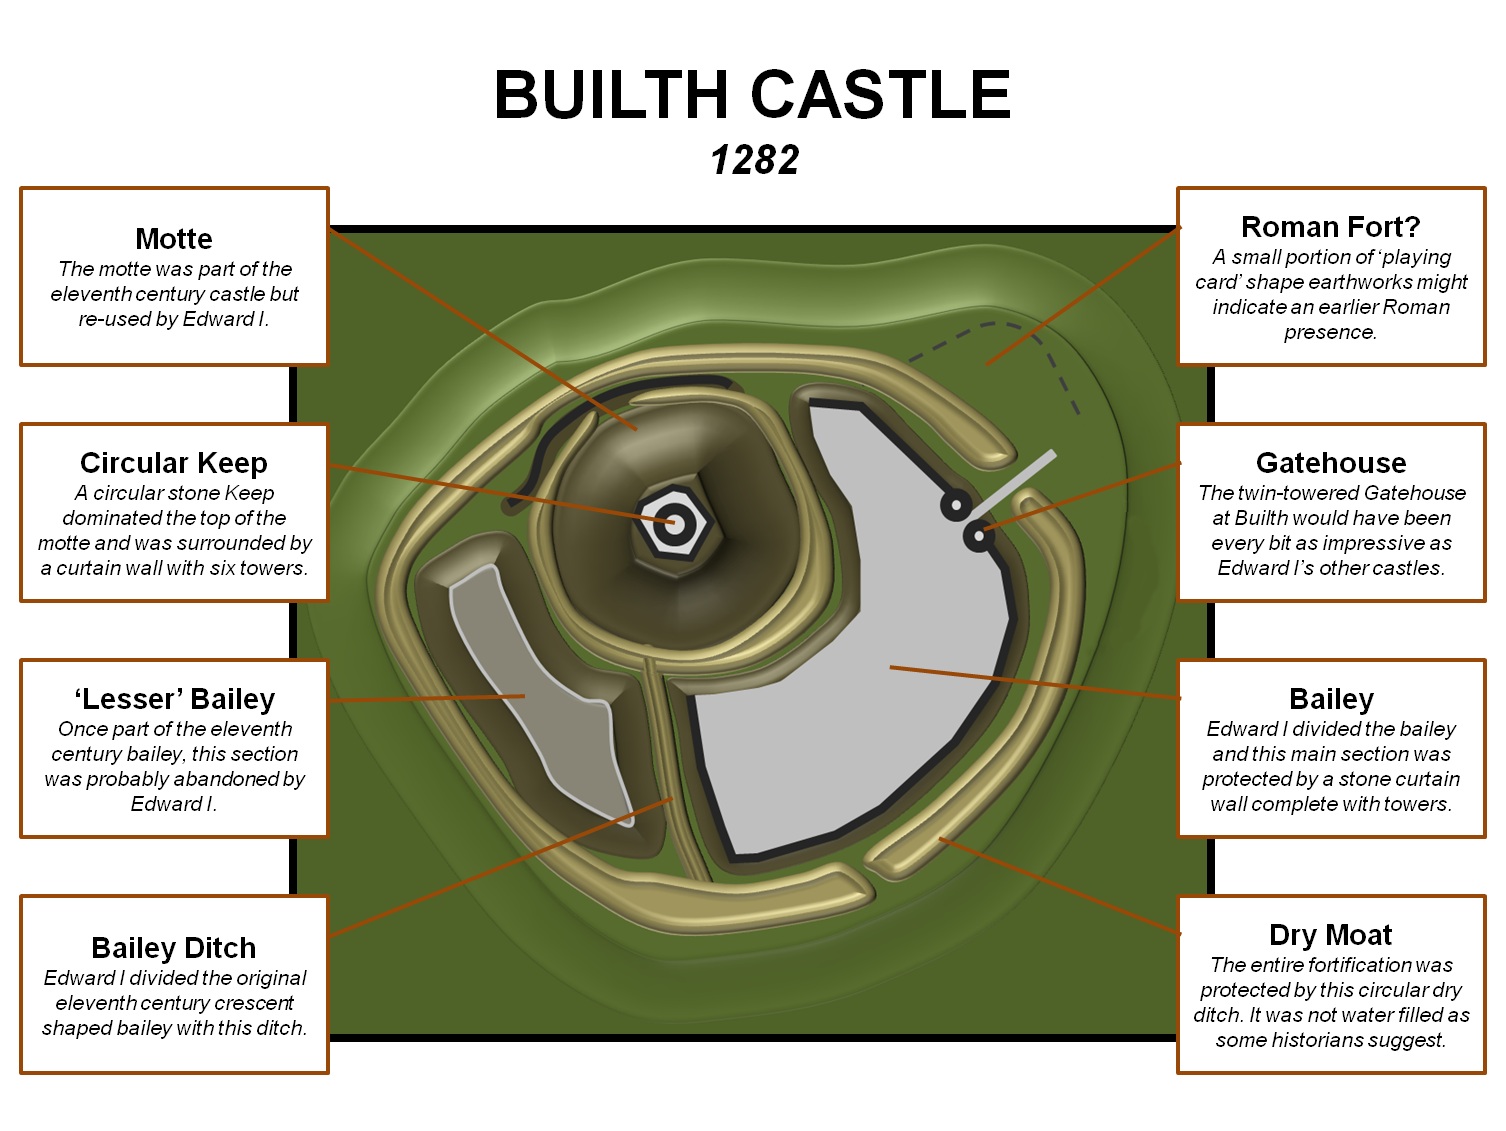 Builth castle central wales castles forts and battles builth castle layout the original motte and bailey raised by the de braose family in the late eleventh century had a crescent shaped bailey that wrapped pooptronica Images